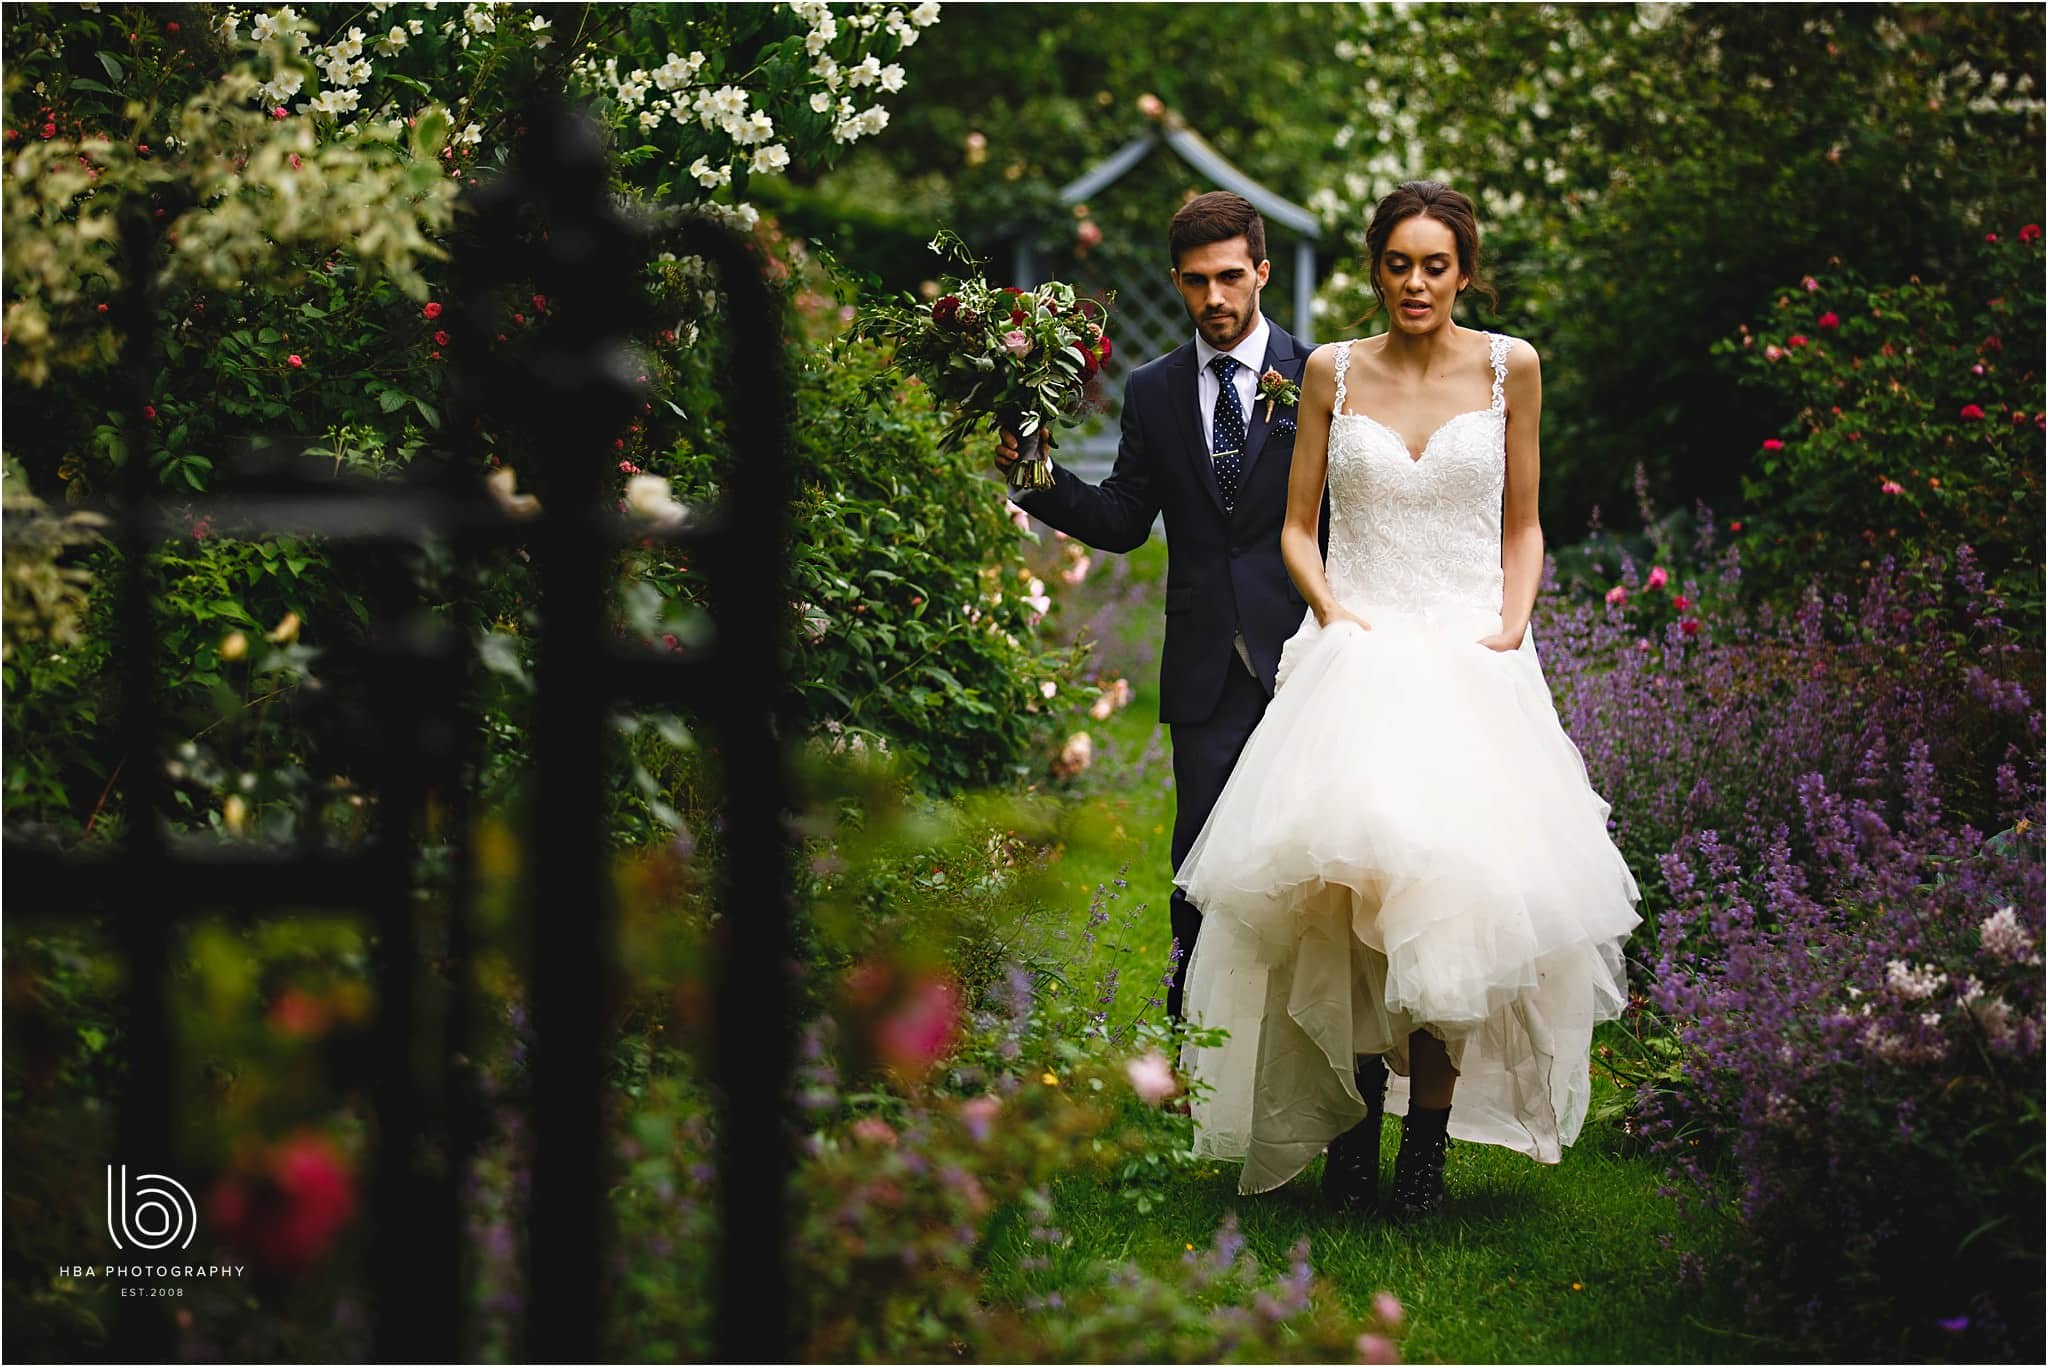 the bride and groom walking out of the dorfold Hall gardens